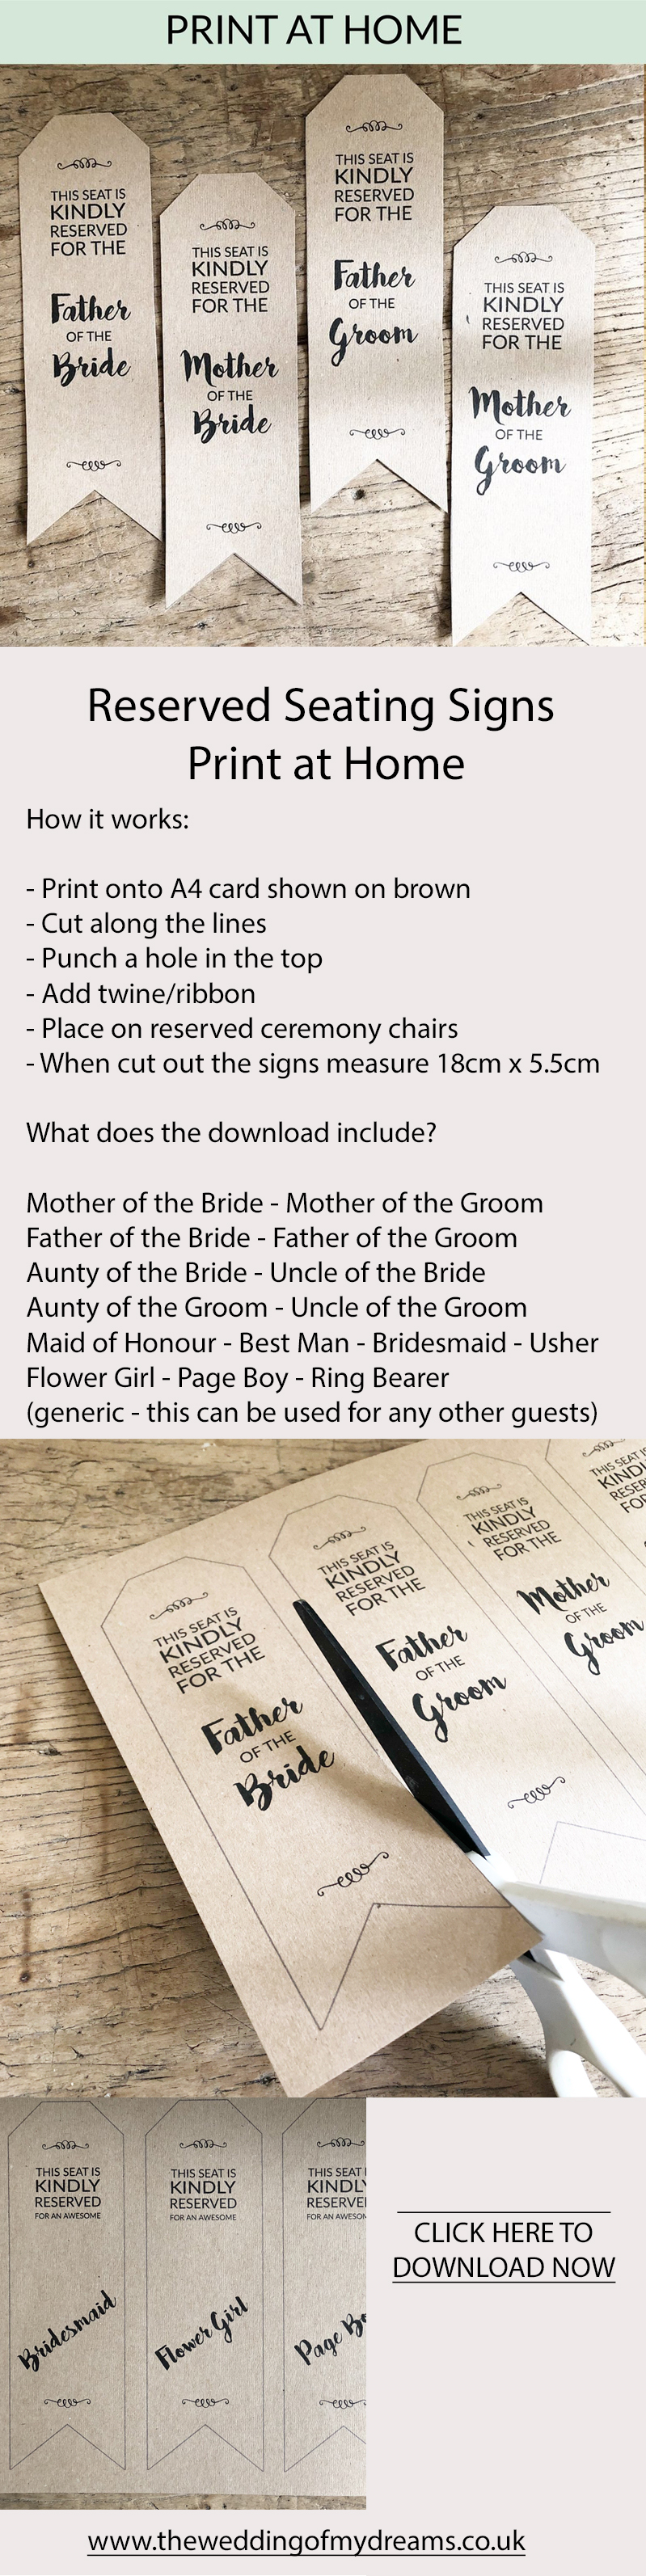 reserved seating signs wedding ceremony printables print at home